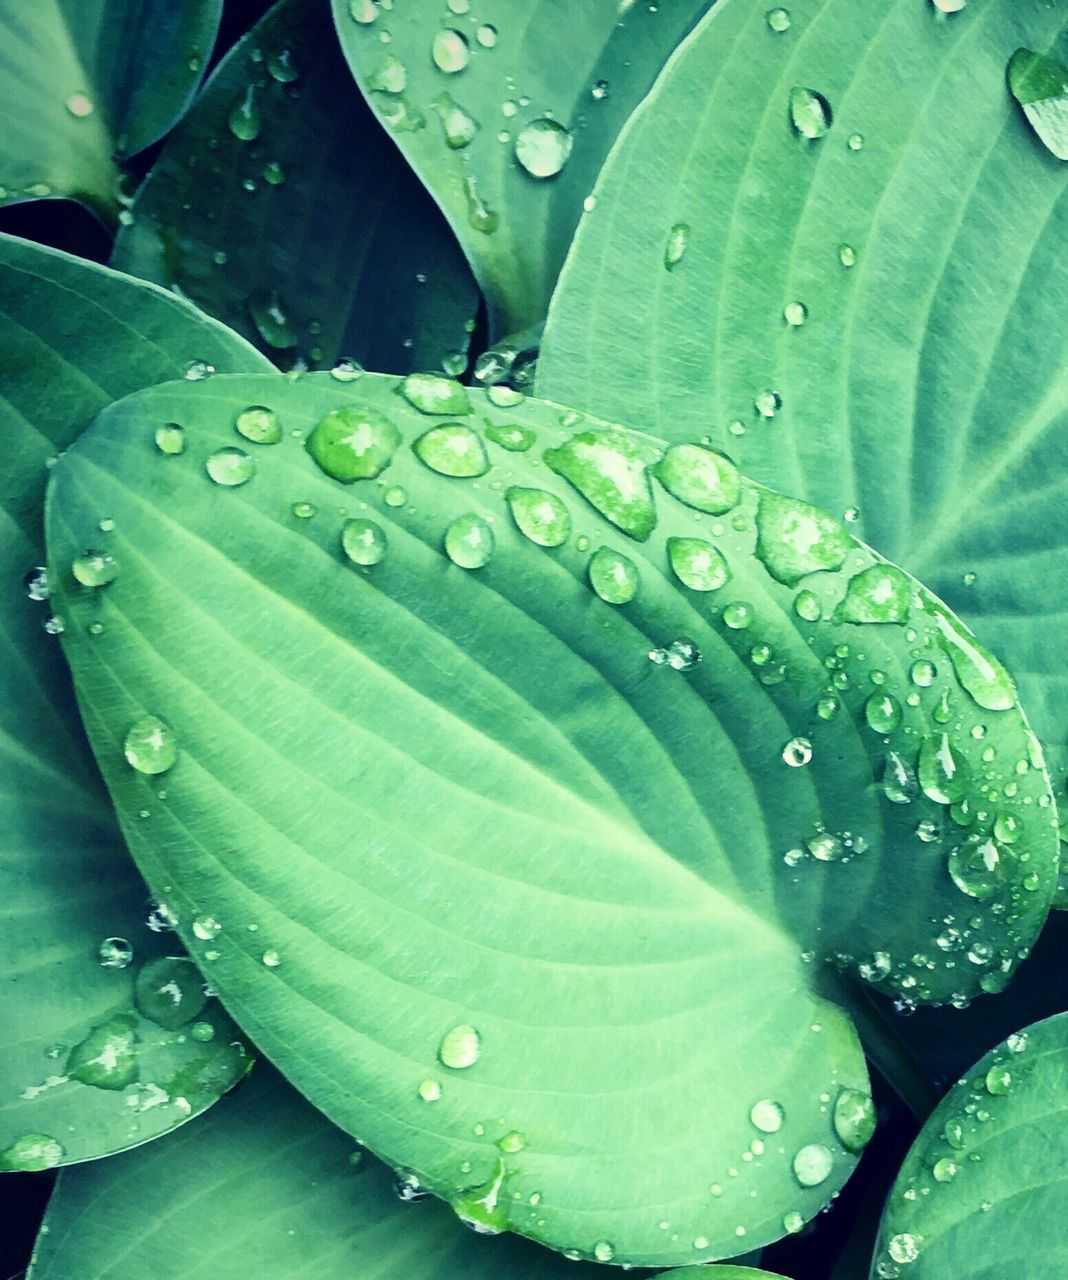 drop, leaf, green color, water, wet, close-up, nature, freshness, growth, raindrop, outdoors, plant, beauty in nature, day, fragility, no people, backgrounds, purity